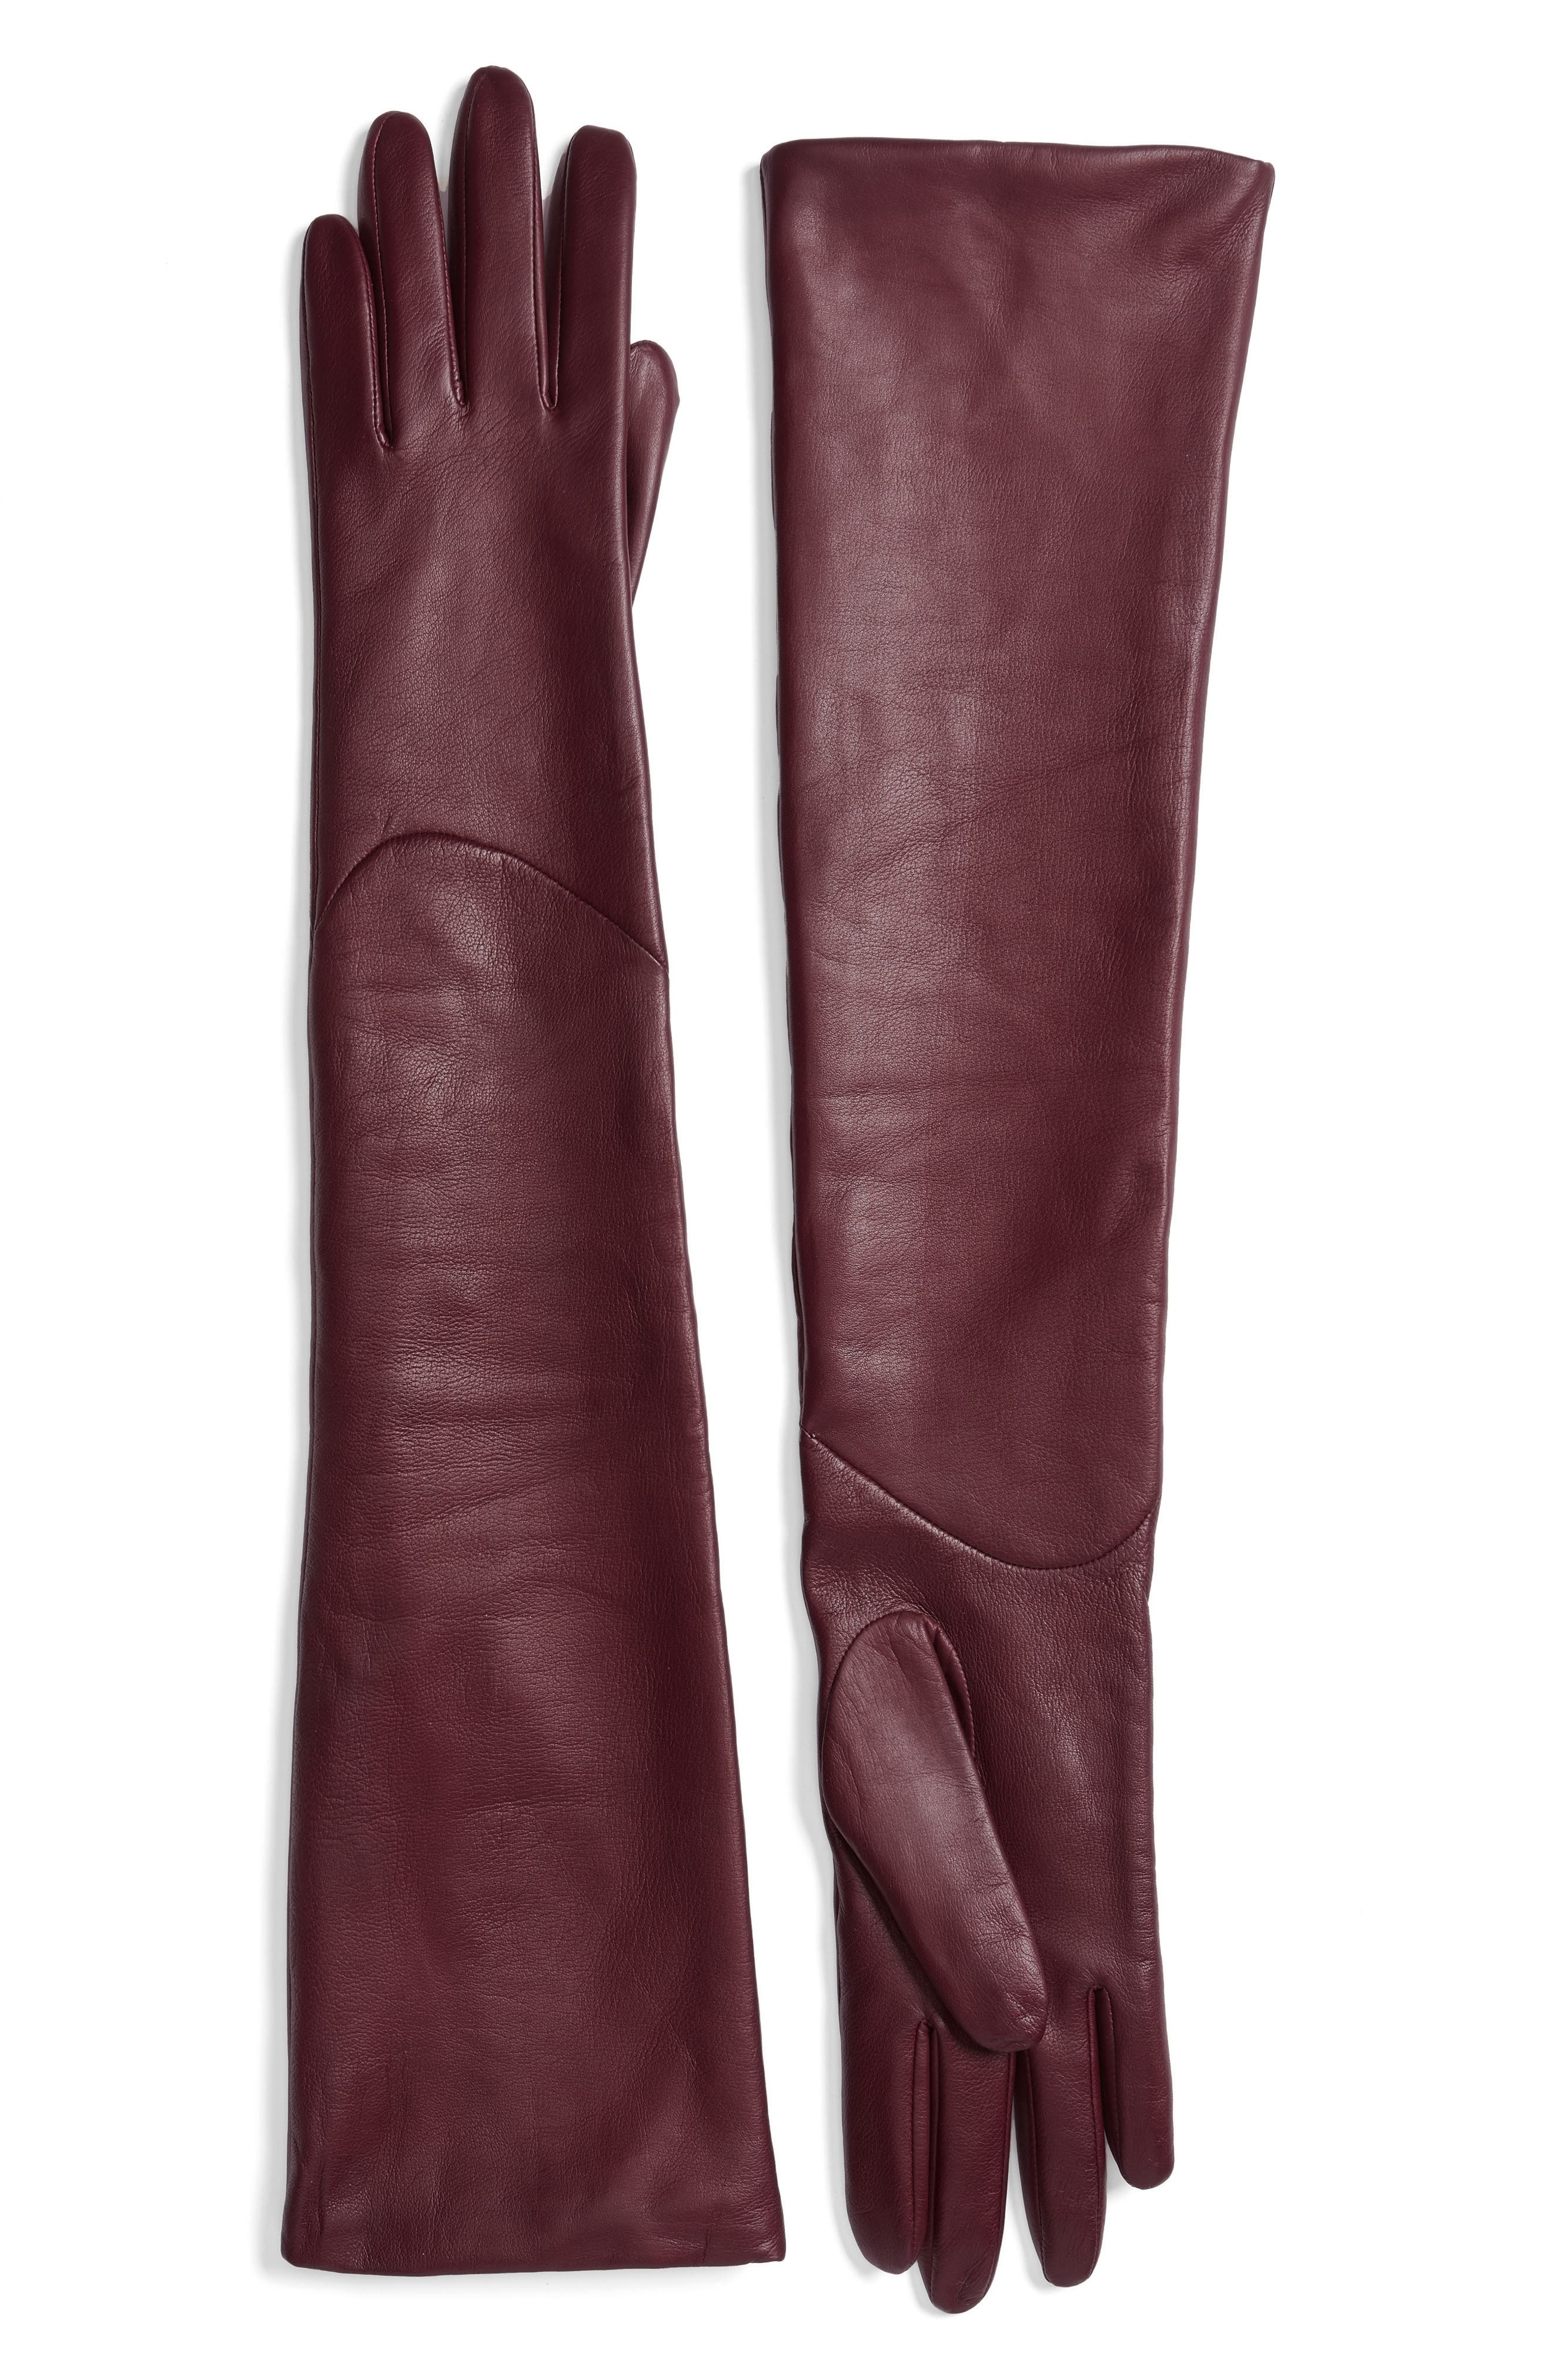 Long Leather Gloves,                             Main thumbnail 1, color,                             Burgundy